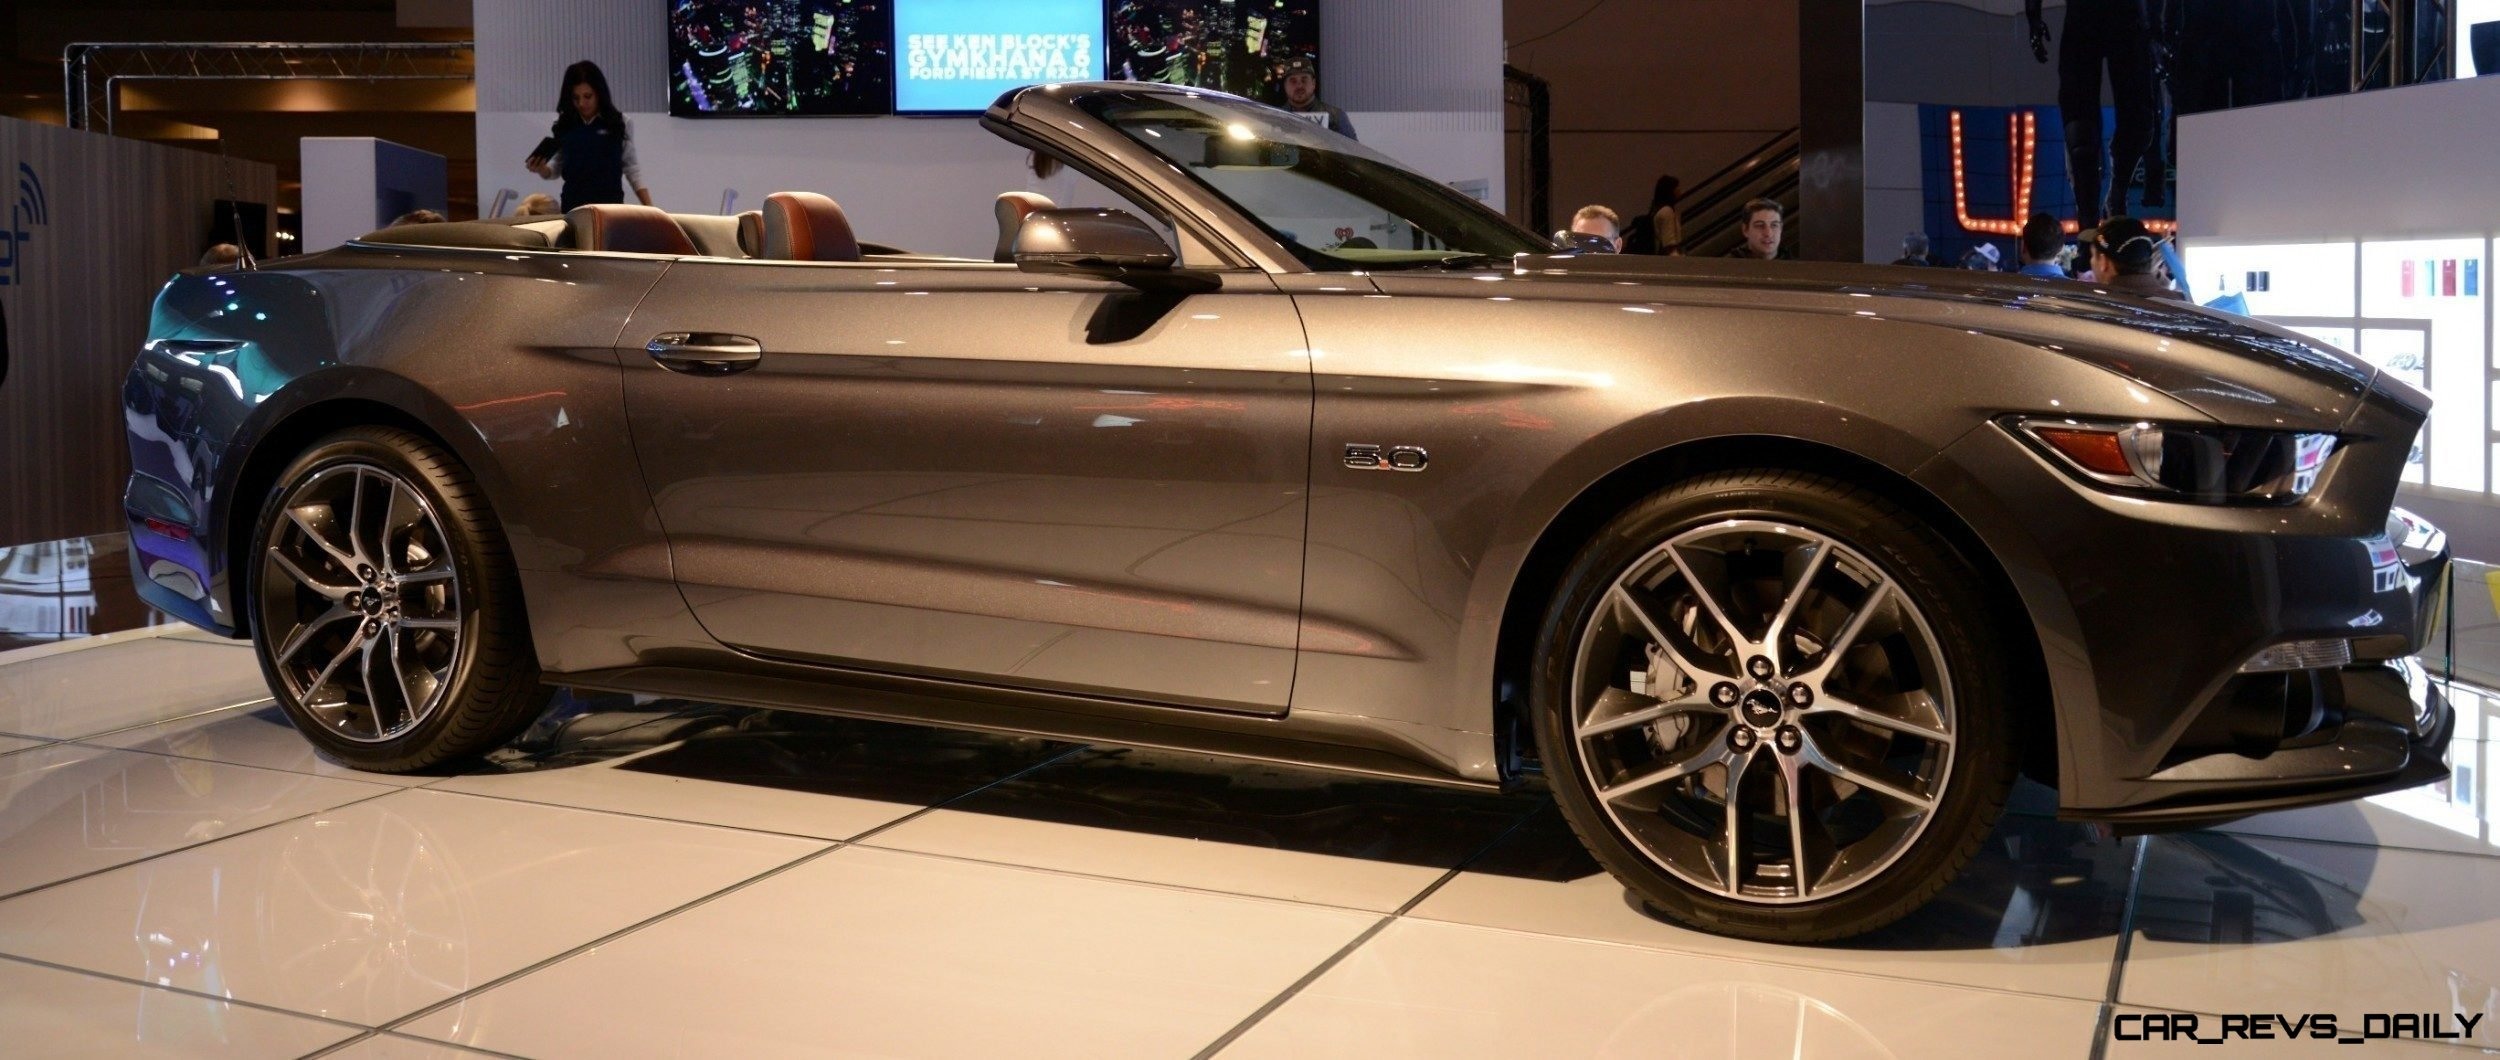 2015 ford mustang gt mean lean and ready to brawl in latest real